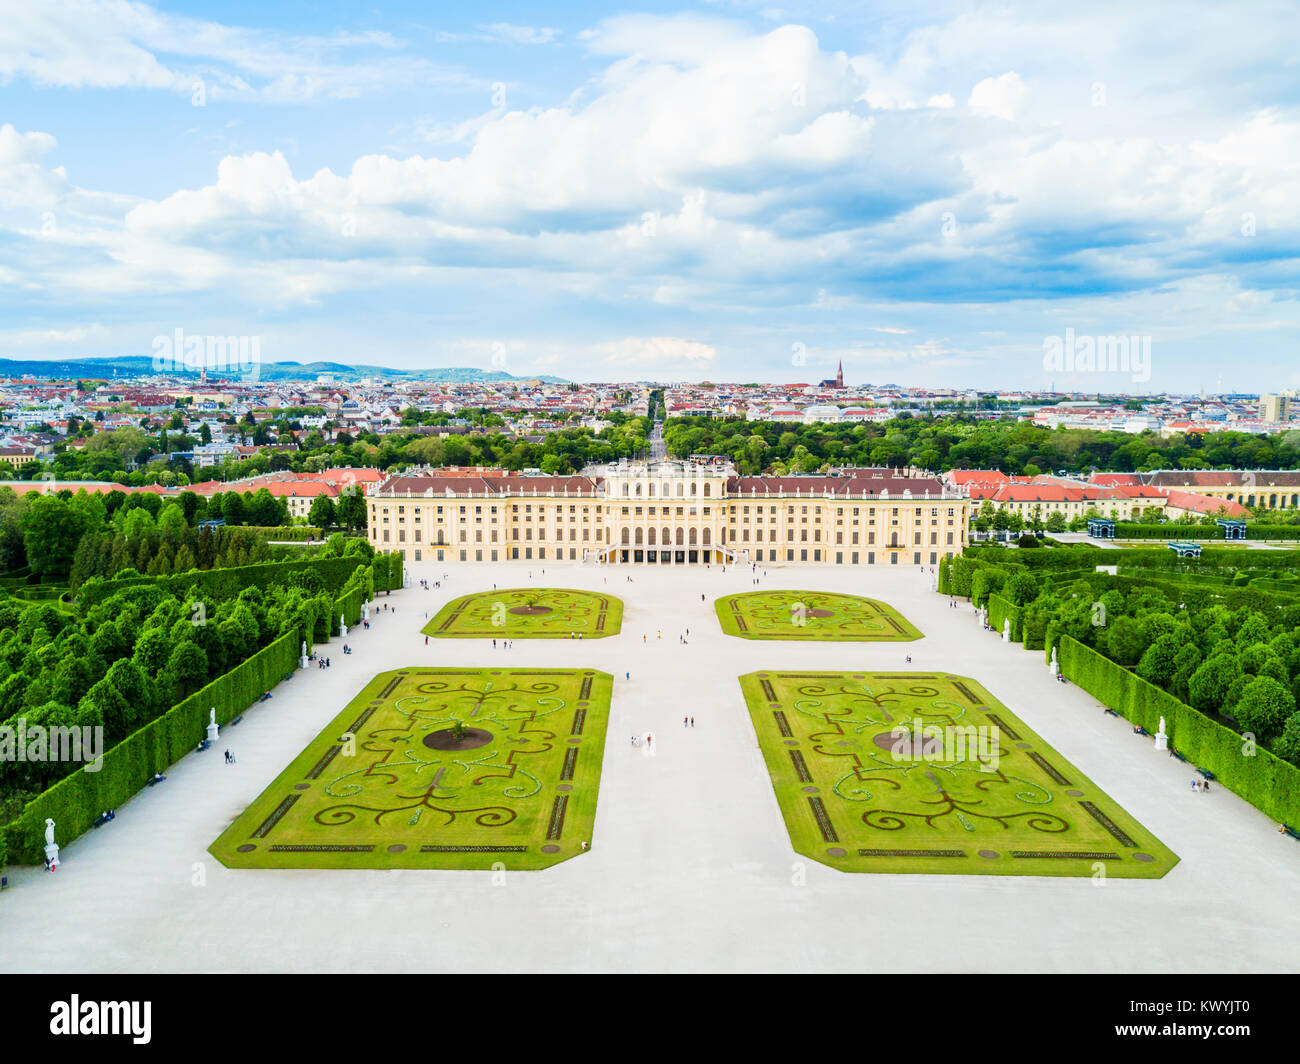 Schonbrunn Palace aerial panoramic view. Schloss Schoenbrunn is an imperial summer residence in Vienna, Austria. - Stock Image